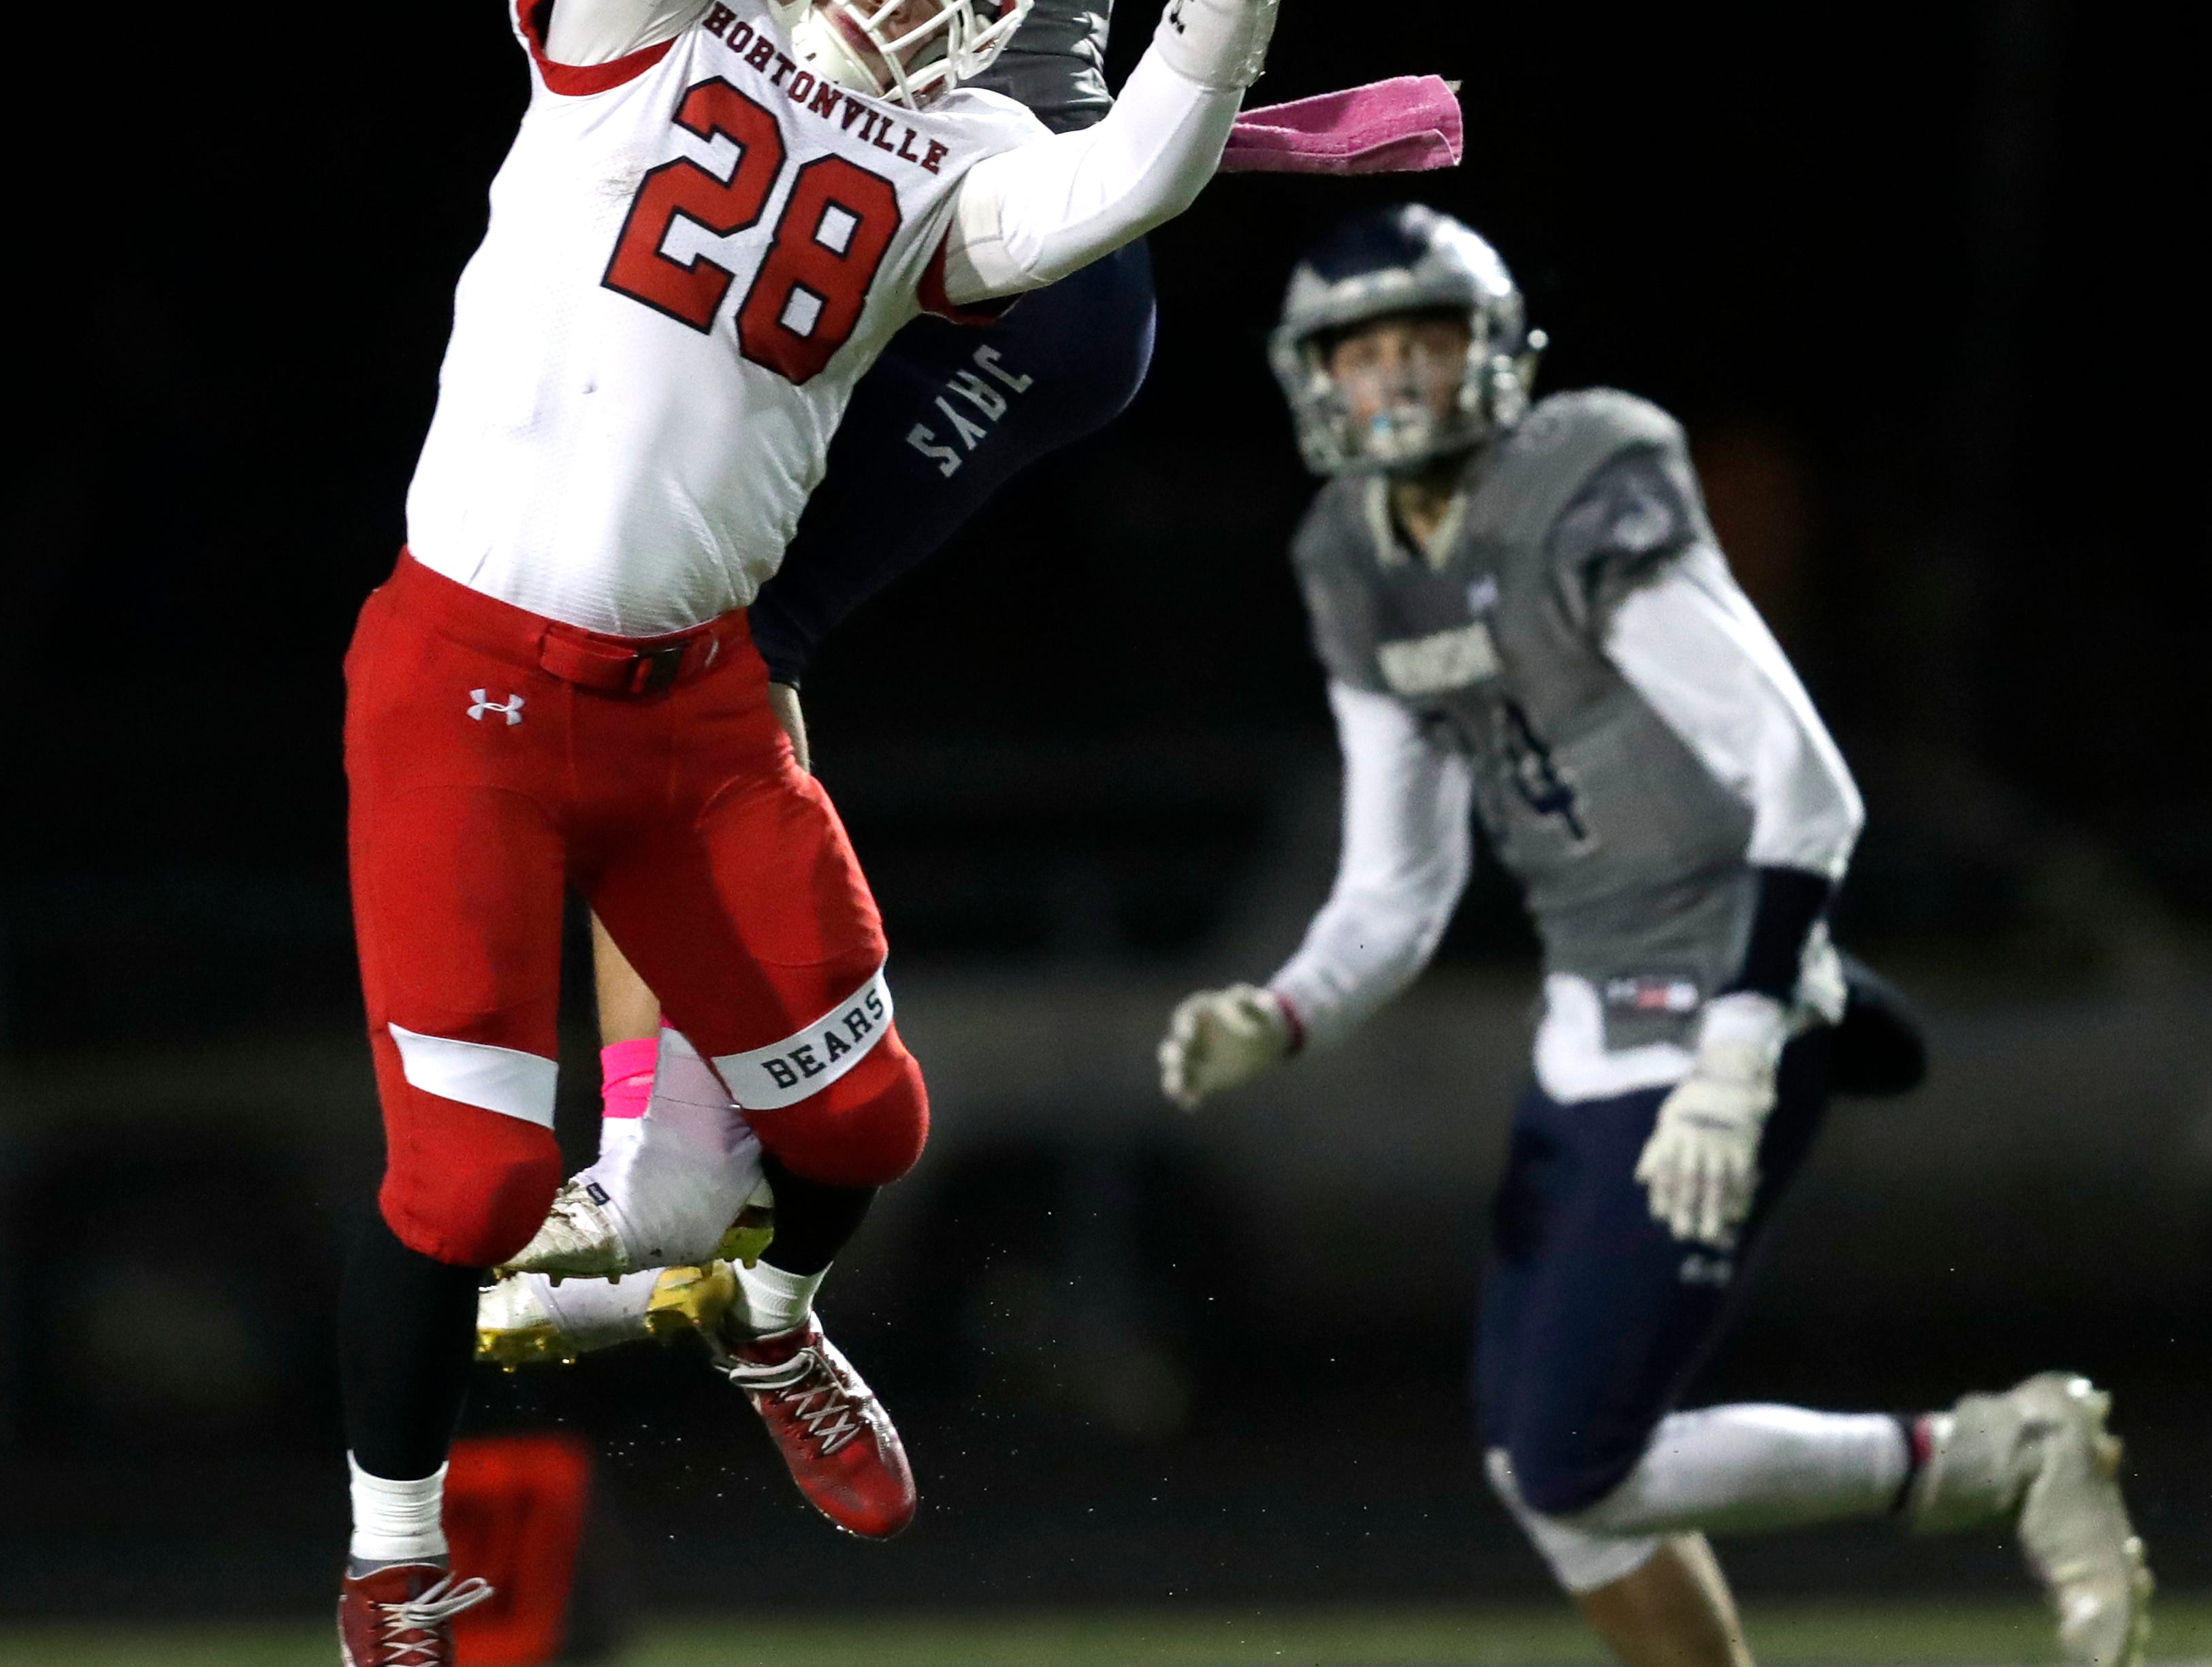 Menasha High School's Leviathian Fleming (13) breaks up a pass intended for Hortonville High School's Gage Payne (28) during their WIAA Division 2 football playoff game Friday, Oct. 19, 2018, at Calder Stadium in Menasha, Wis. 